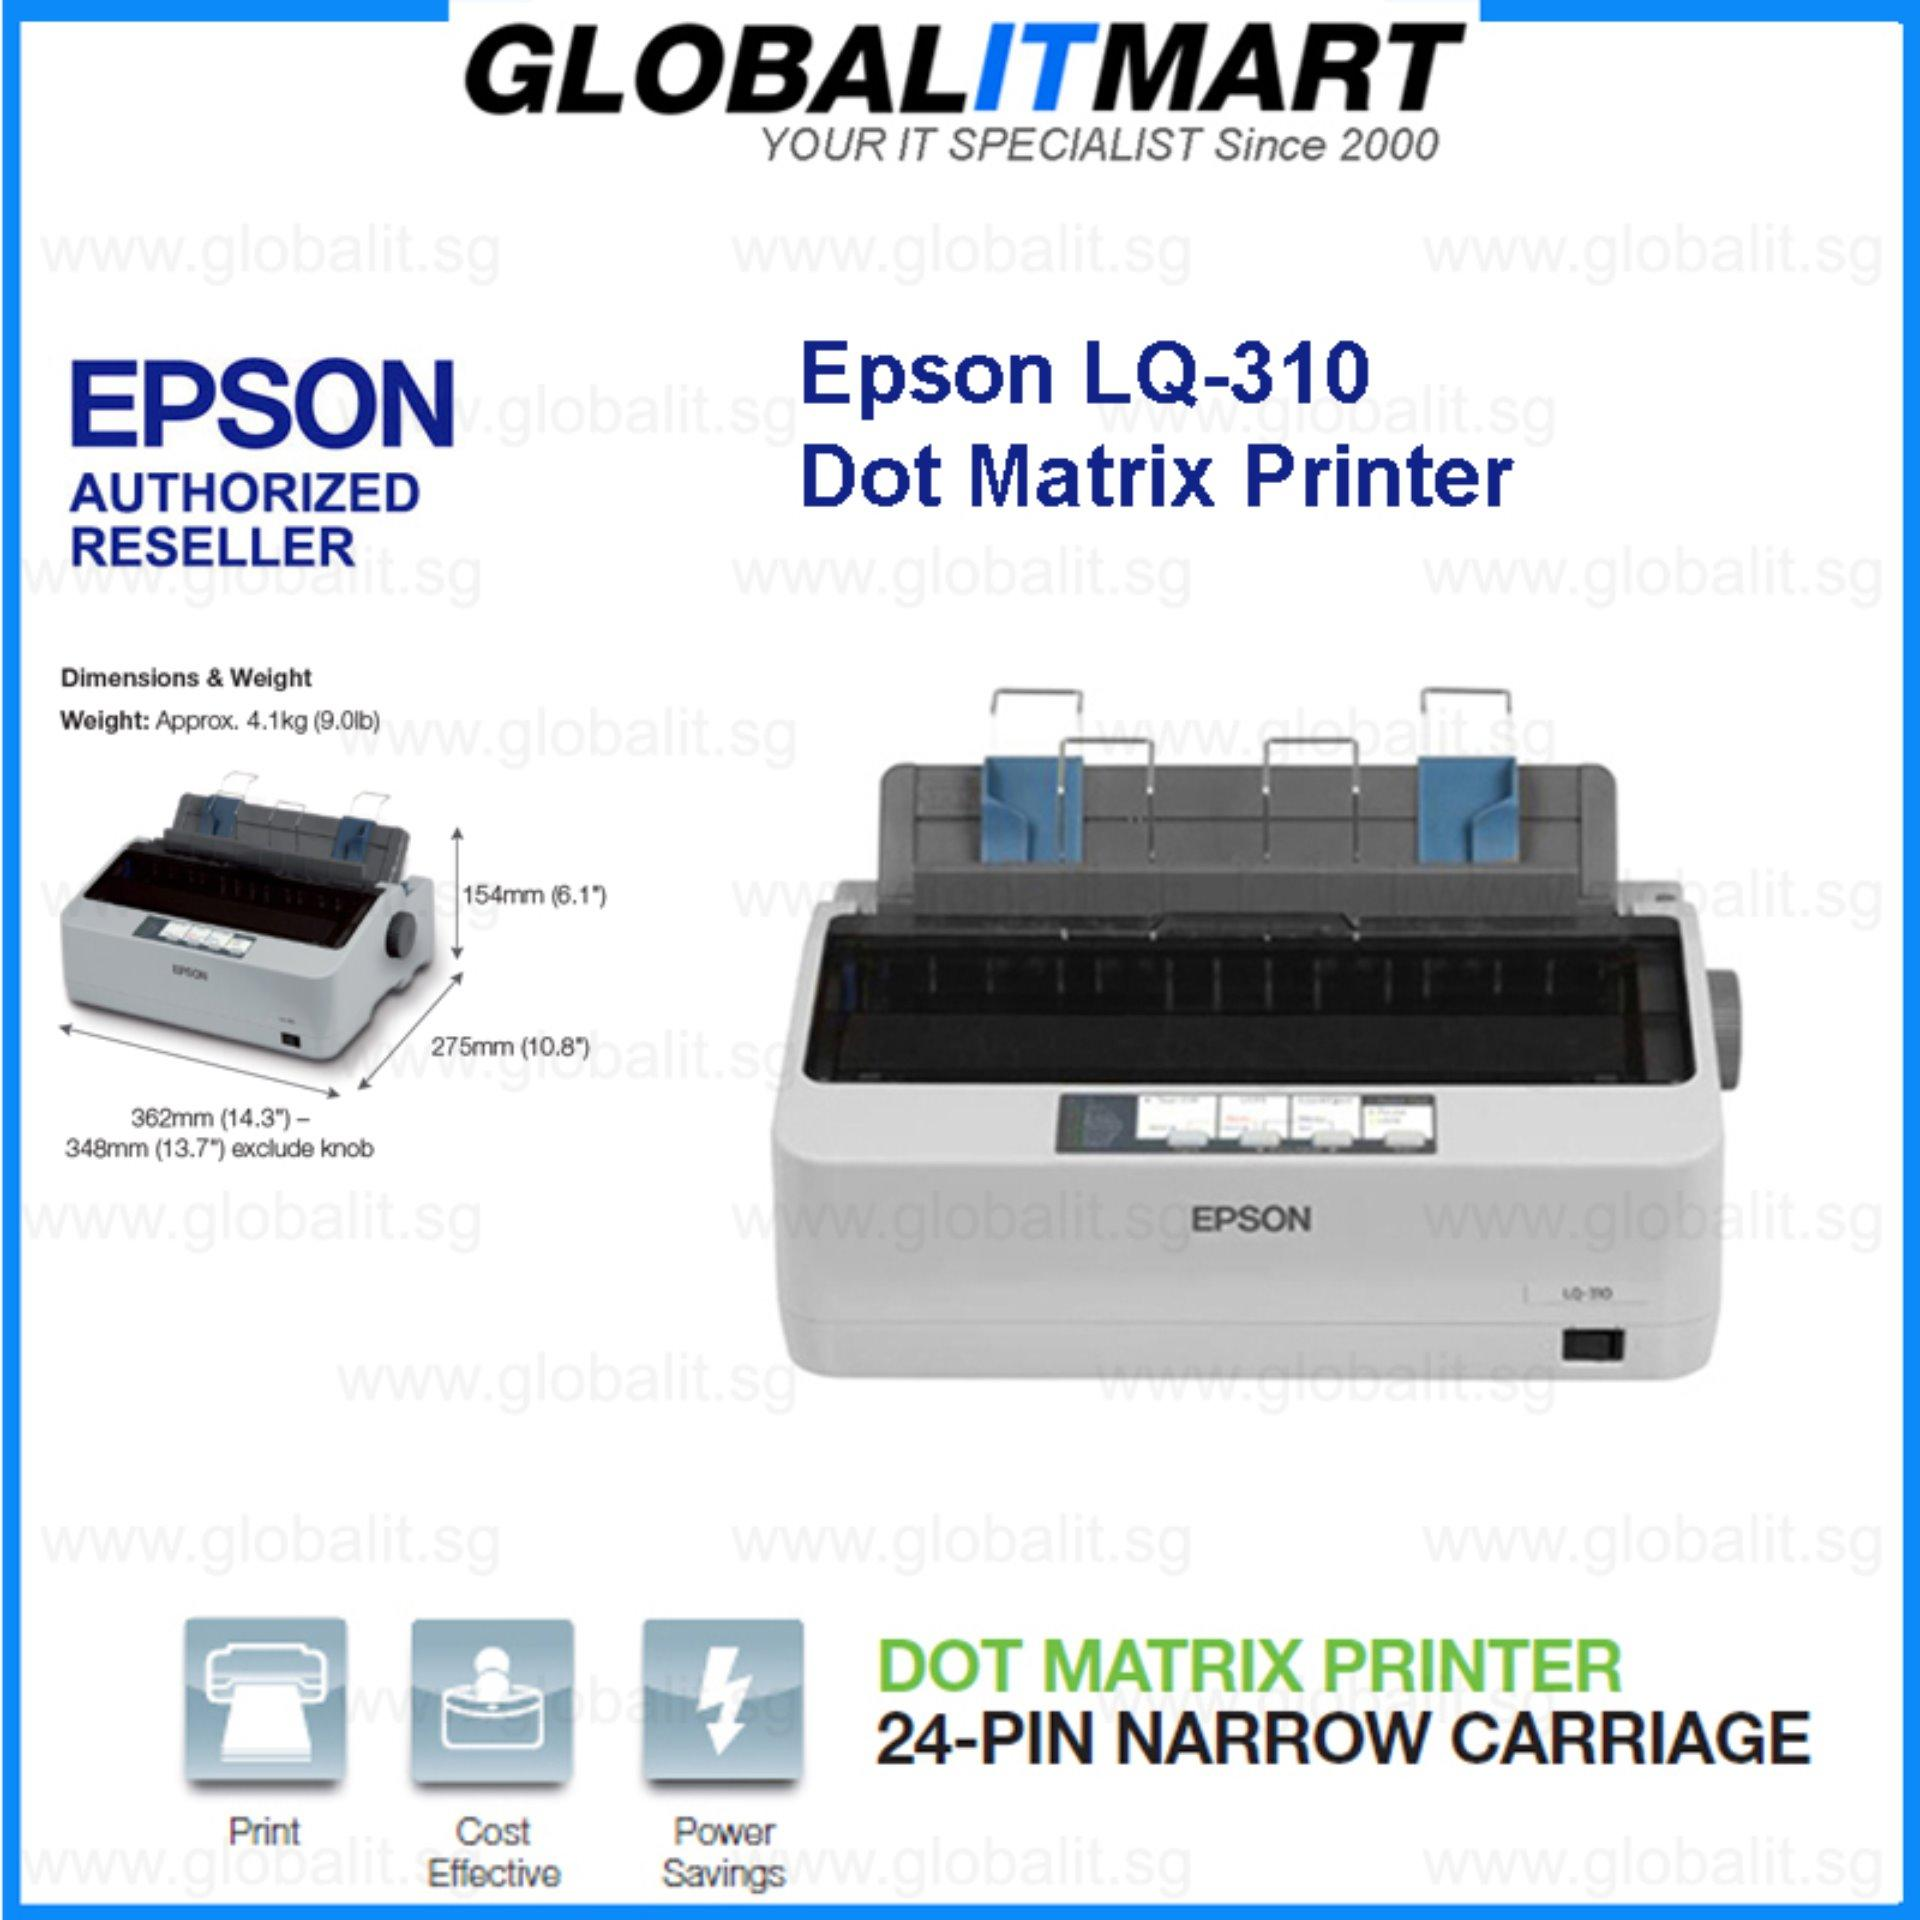 Epson LQ-310 Dot Matrix Printer  Singapore